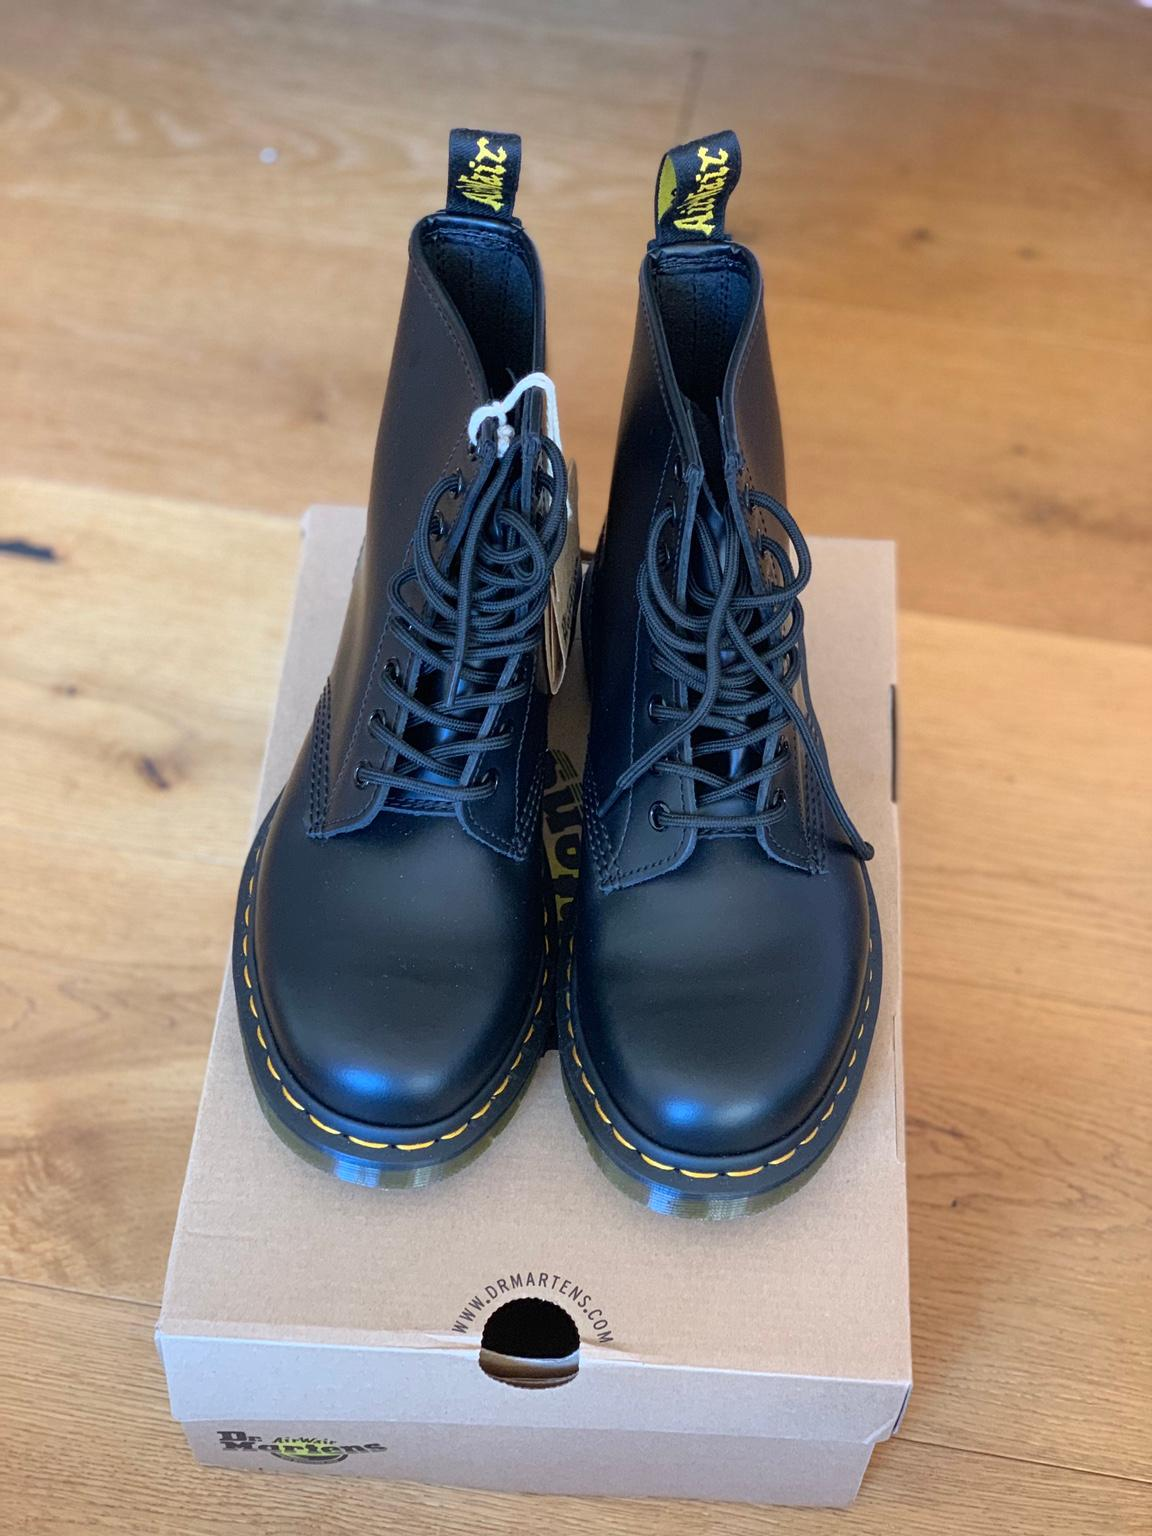 Dr.Martens 1460 Smooth in 9232 Rosegg for €145.00 for sale